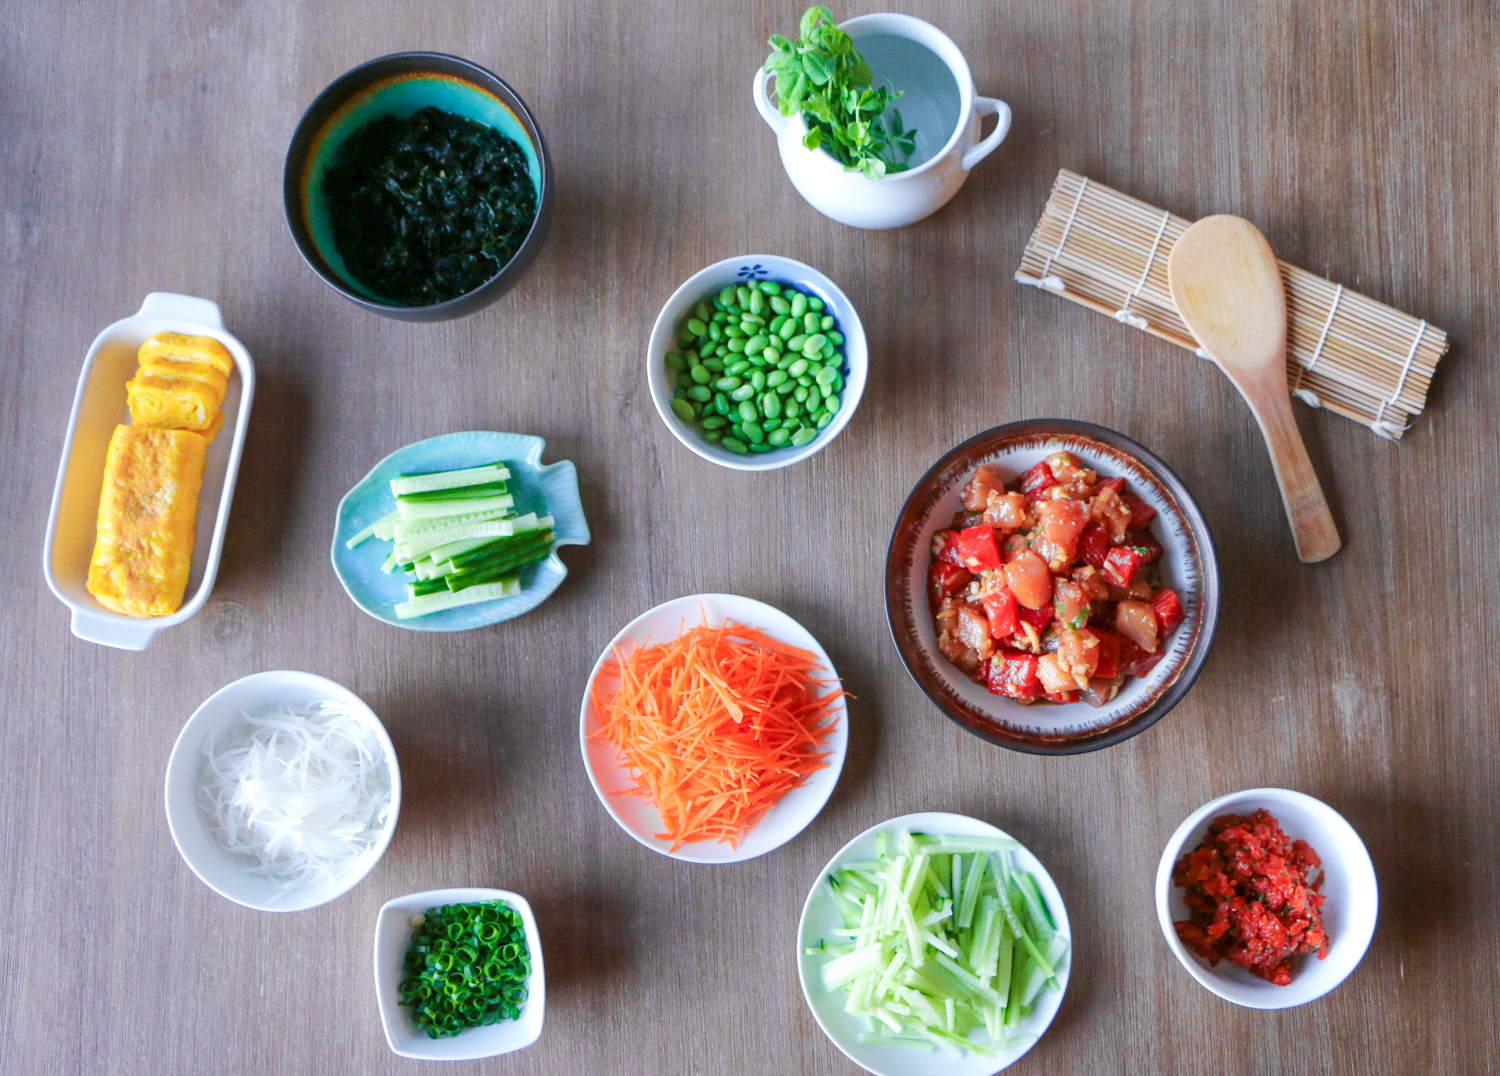 Poke and sushi ingredients